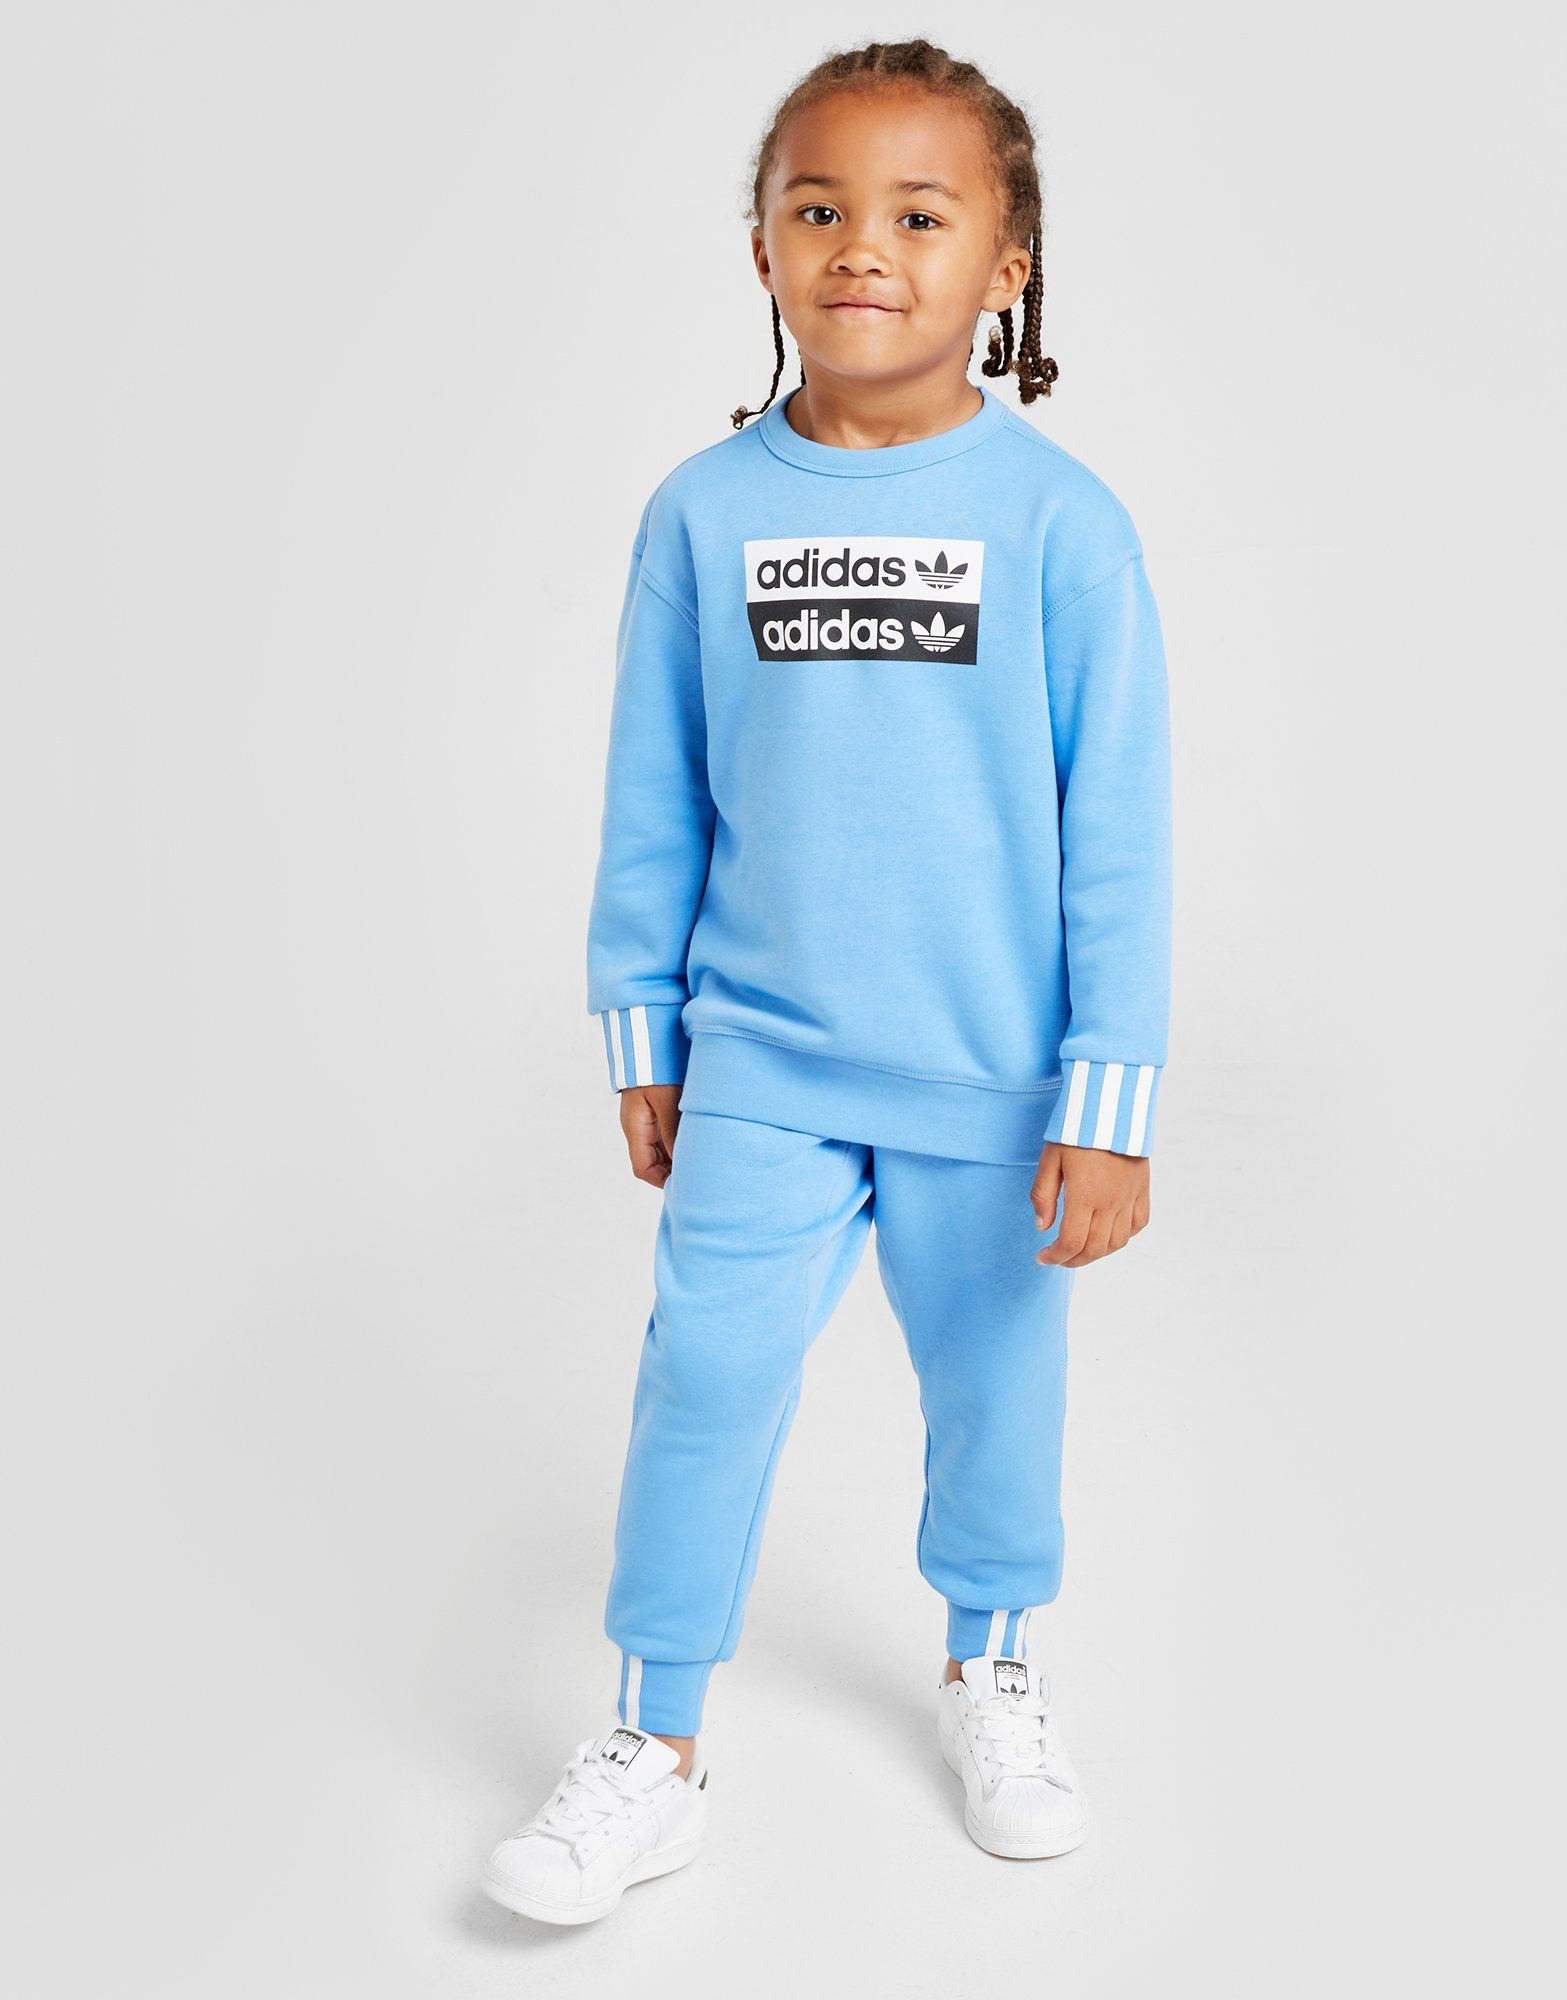 R Tracksuit y ChildrenJd vCrew Sports Originals Adidas YEIWDH2e9